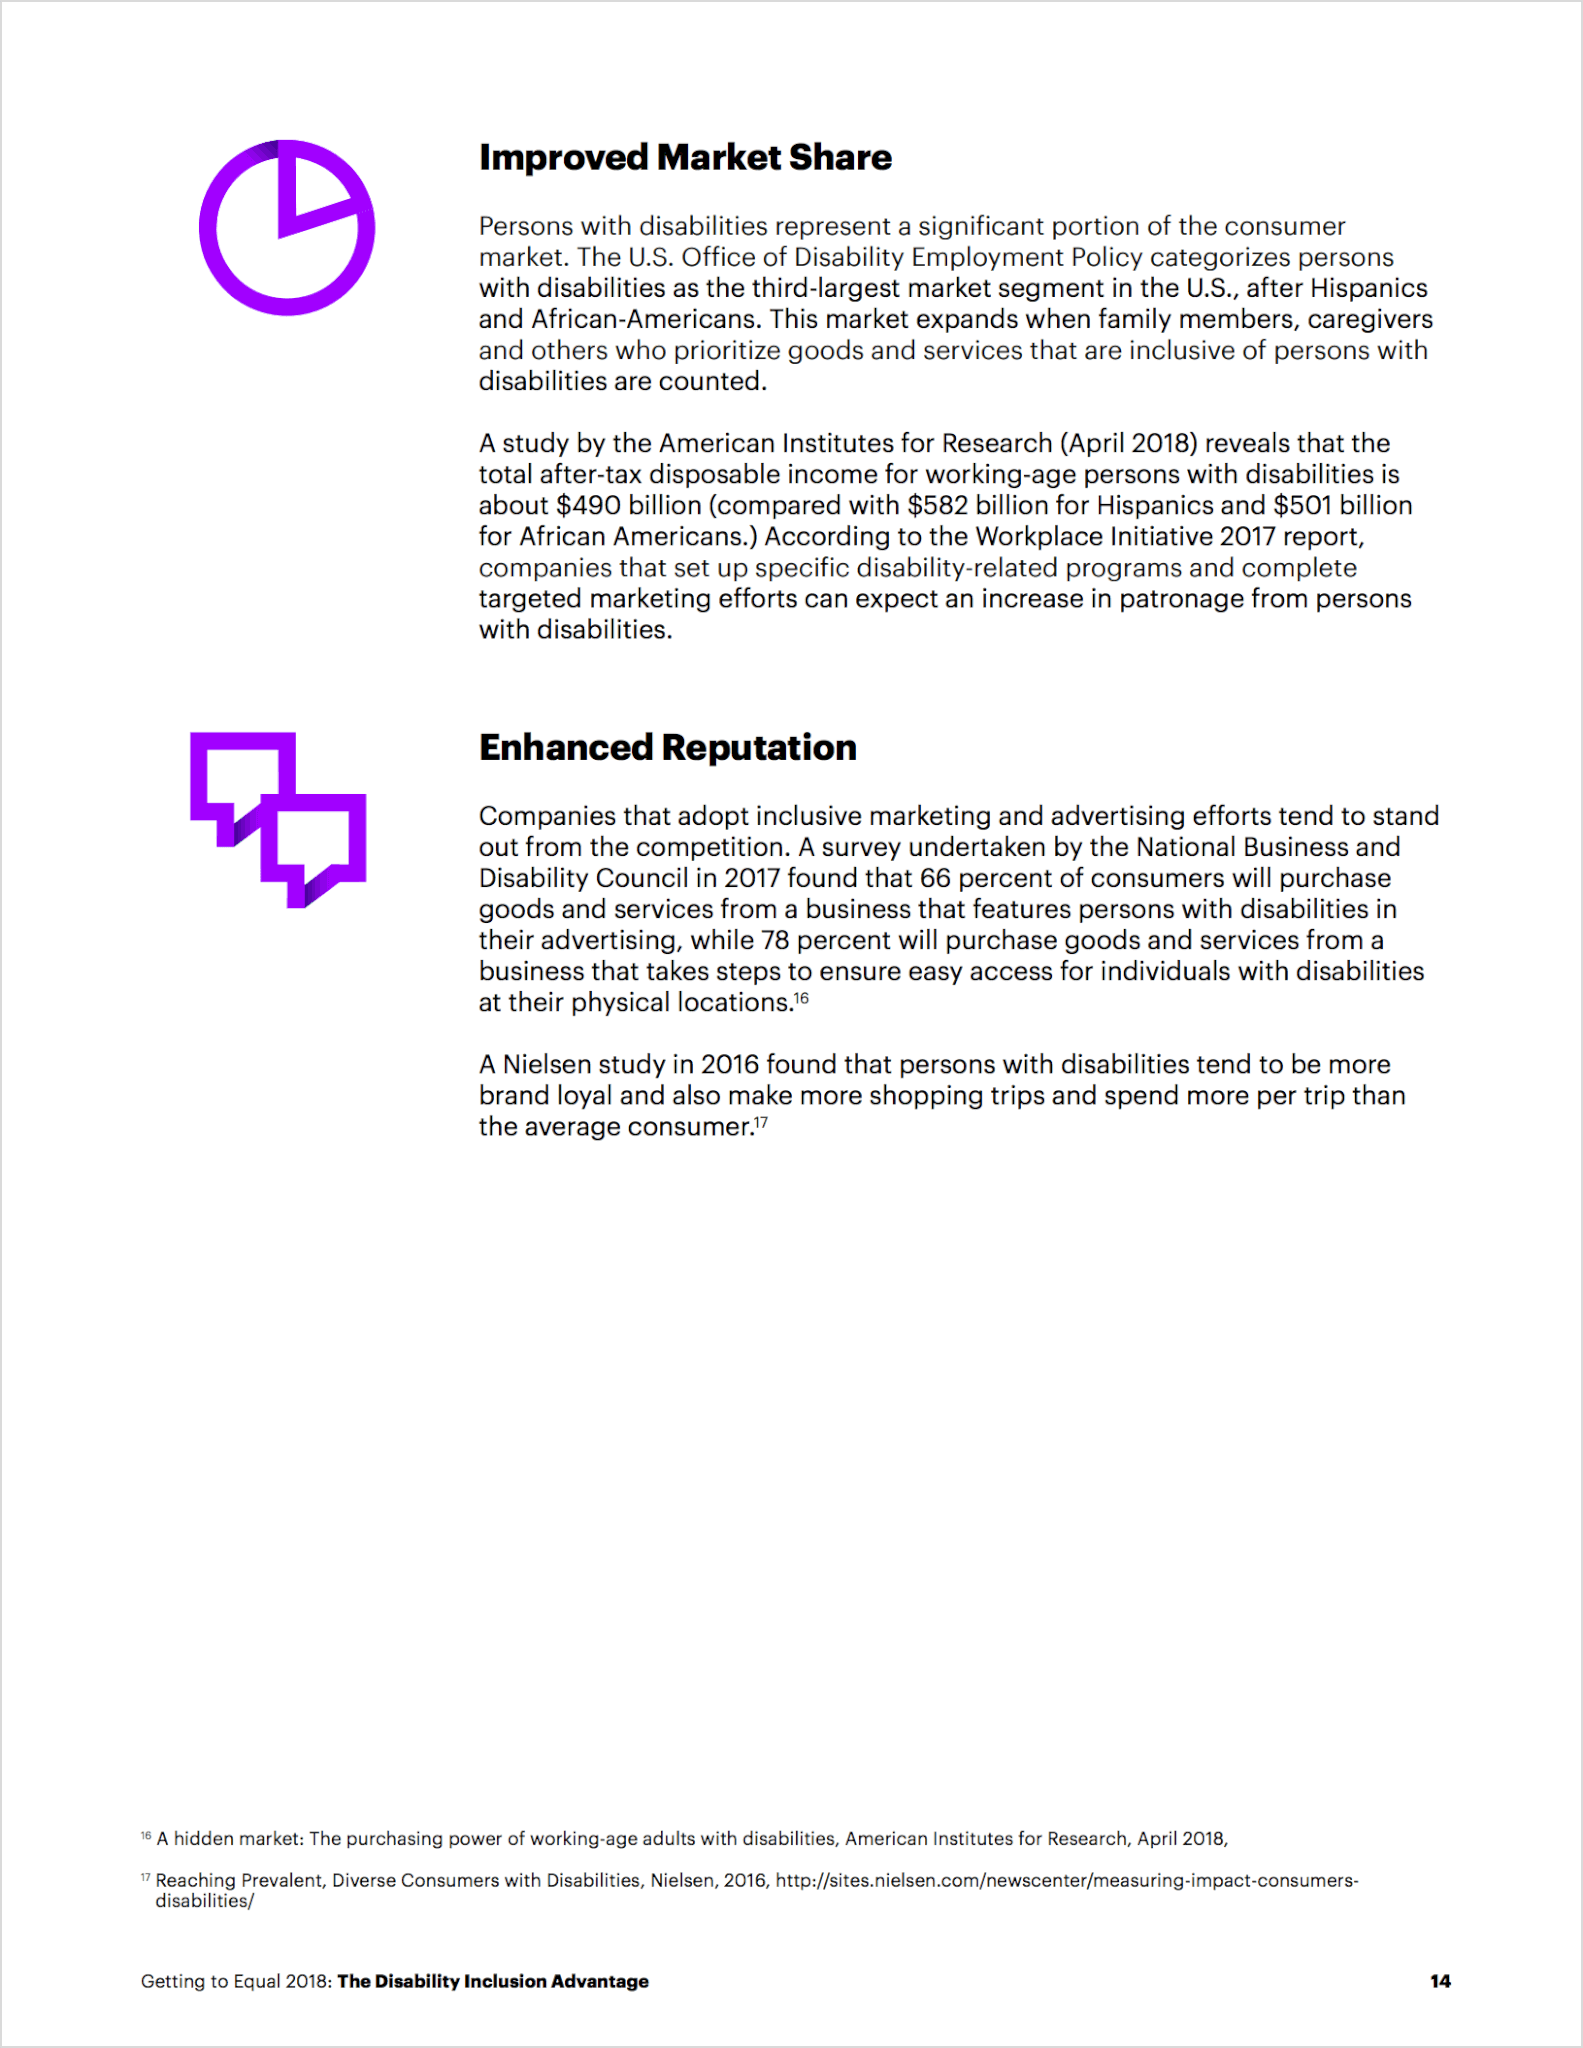 accenture page 13